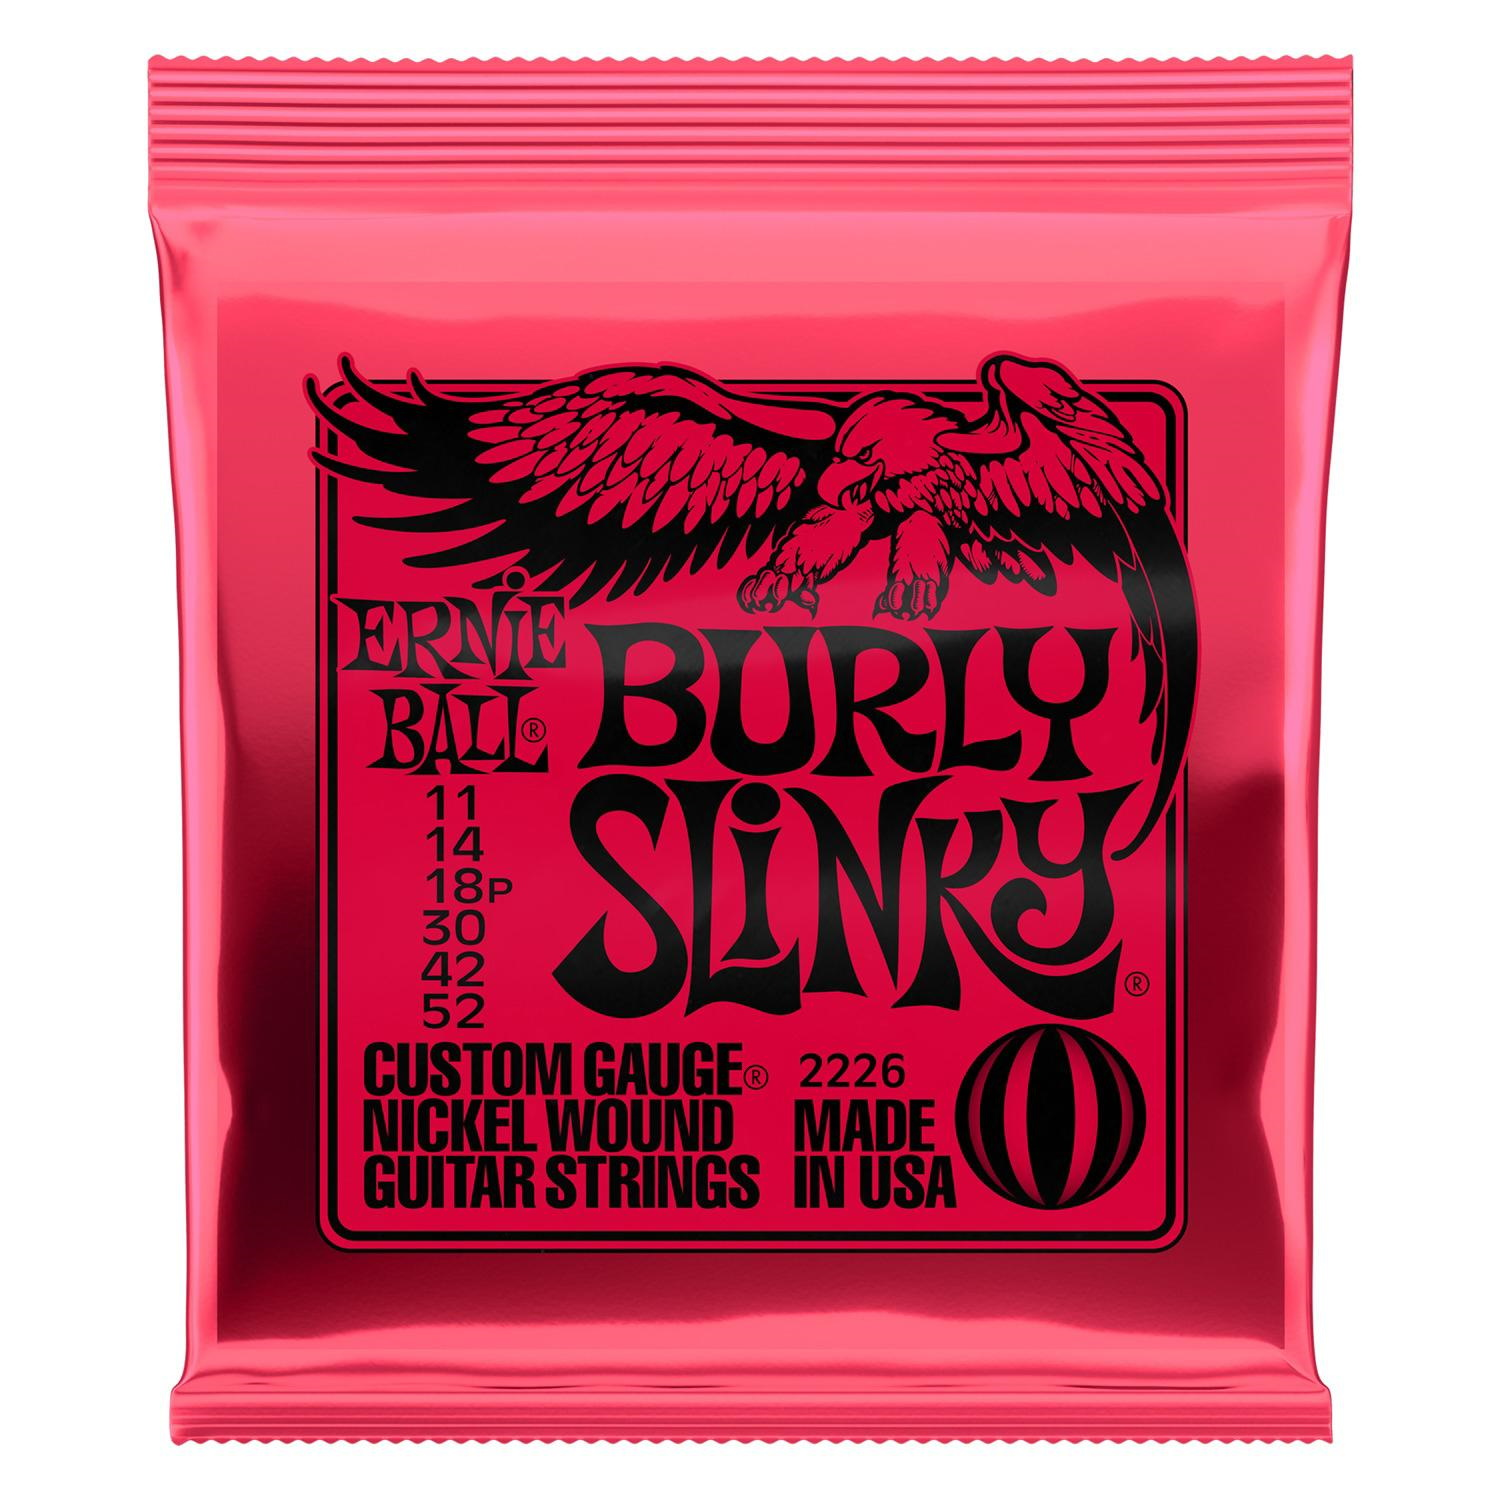 Ernie Ball 2226 Burly Slinky Nickelwound Electric Guitar Strings 11-52